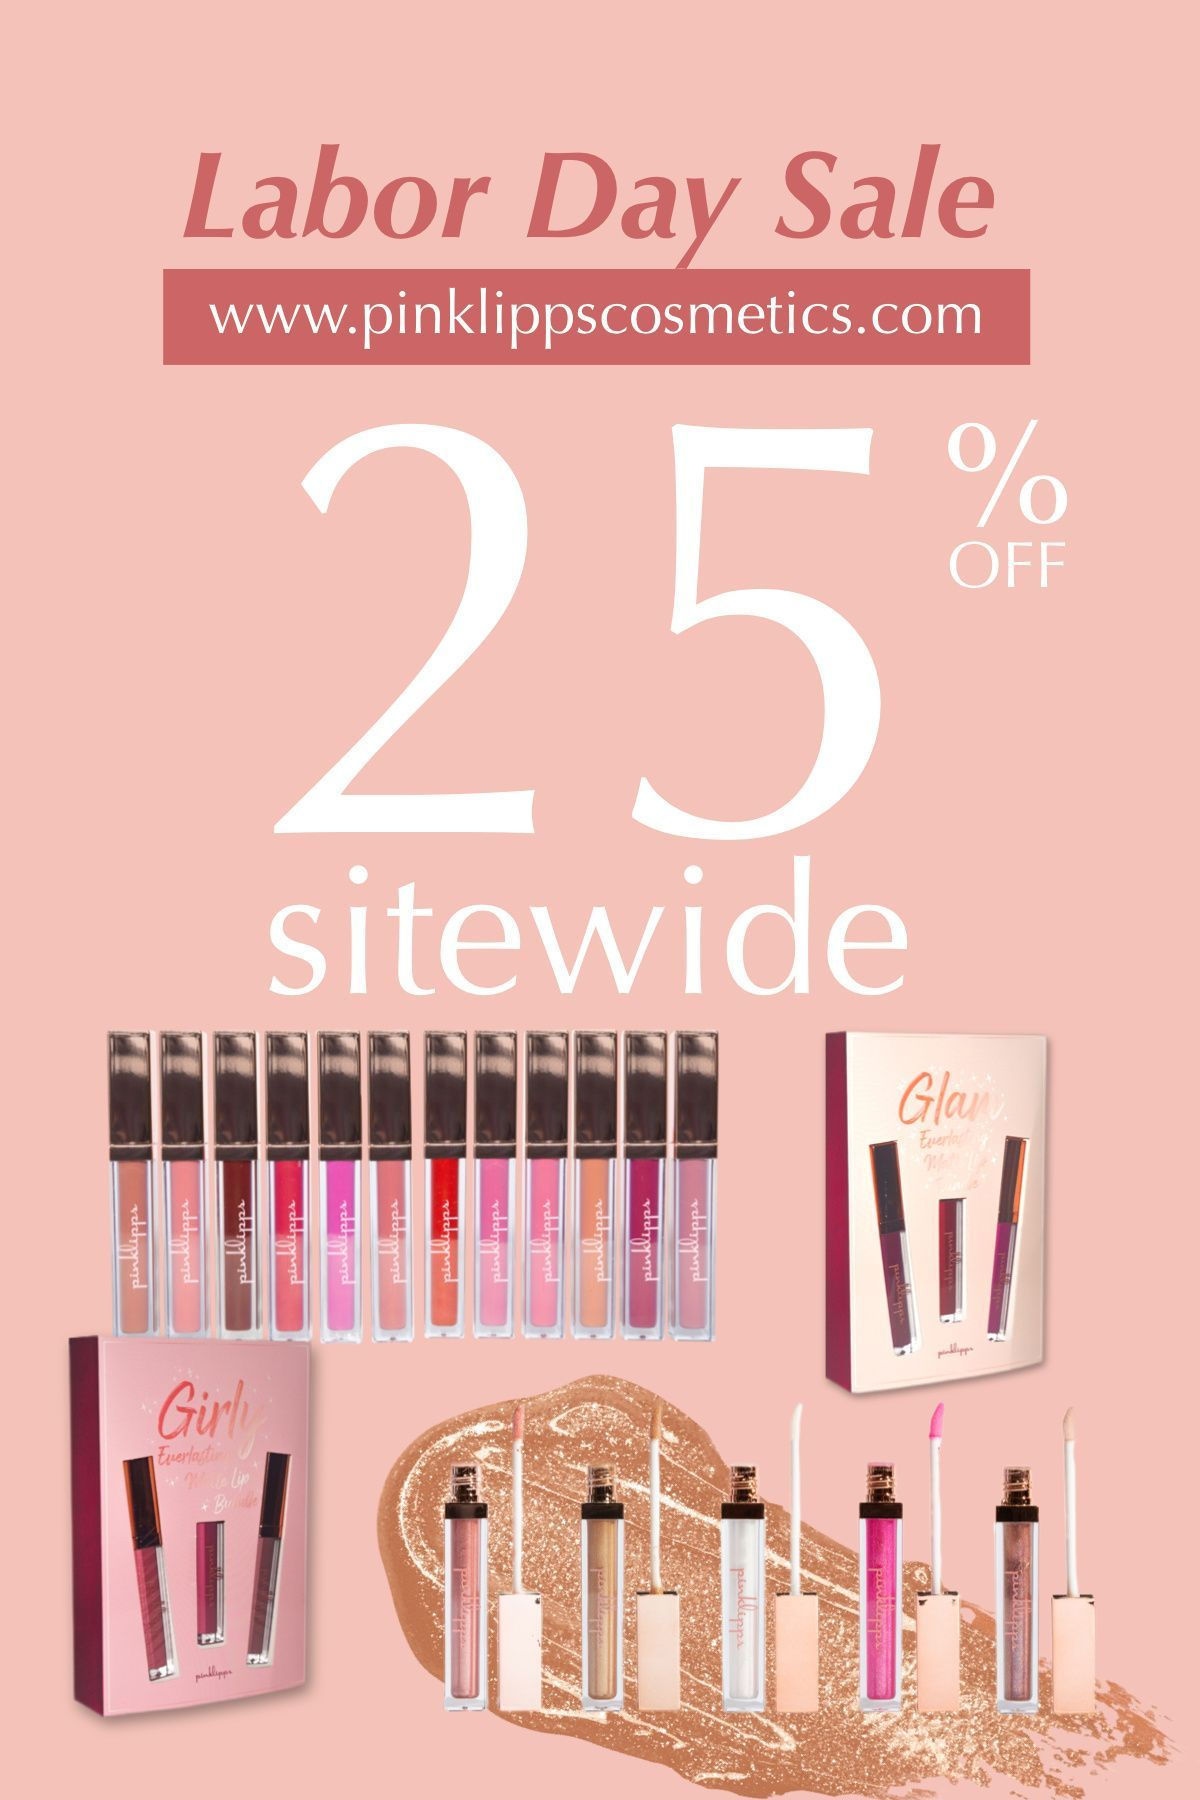 use code: PINKLBD25 to get 25% off through Monday 9/7/20 and get a FREE Makeup Bag   FREE Shipping when your order is $60 or more. Available at www.pinklippscosmetics.com #laborday #pink #lipgloss #lipmatte #ldw #labordaysale #labordayweekend #makeup #beauty #labordaydeals #designs